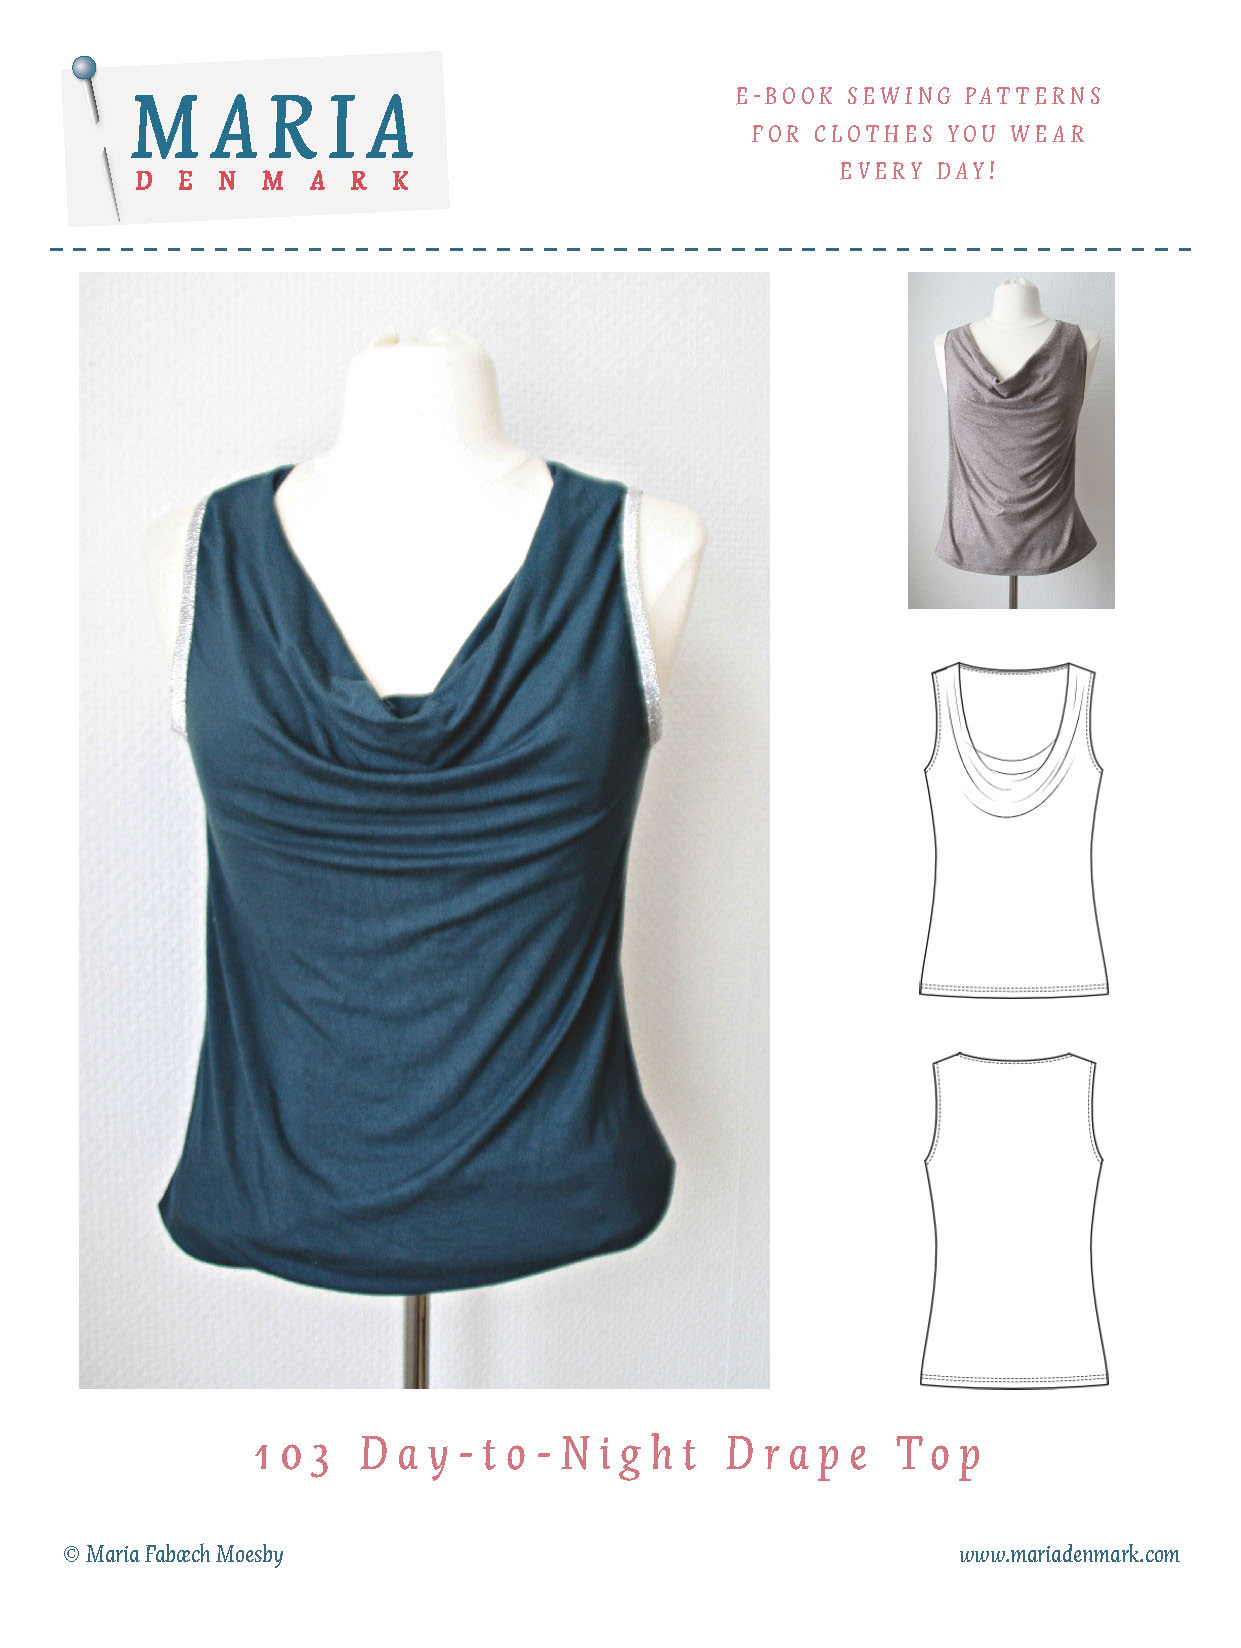 The Day-To-Night Drape Top. Wear it tonight! (and get a surprise package)